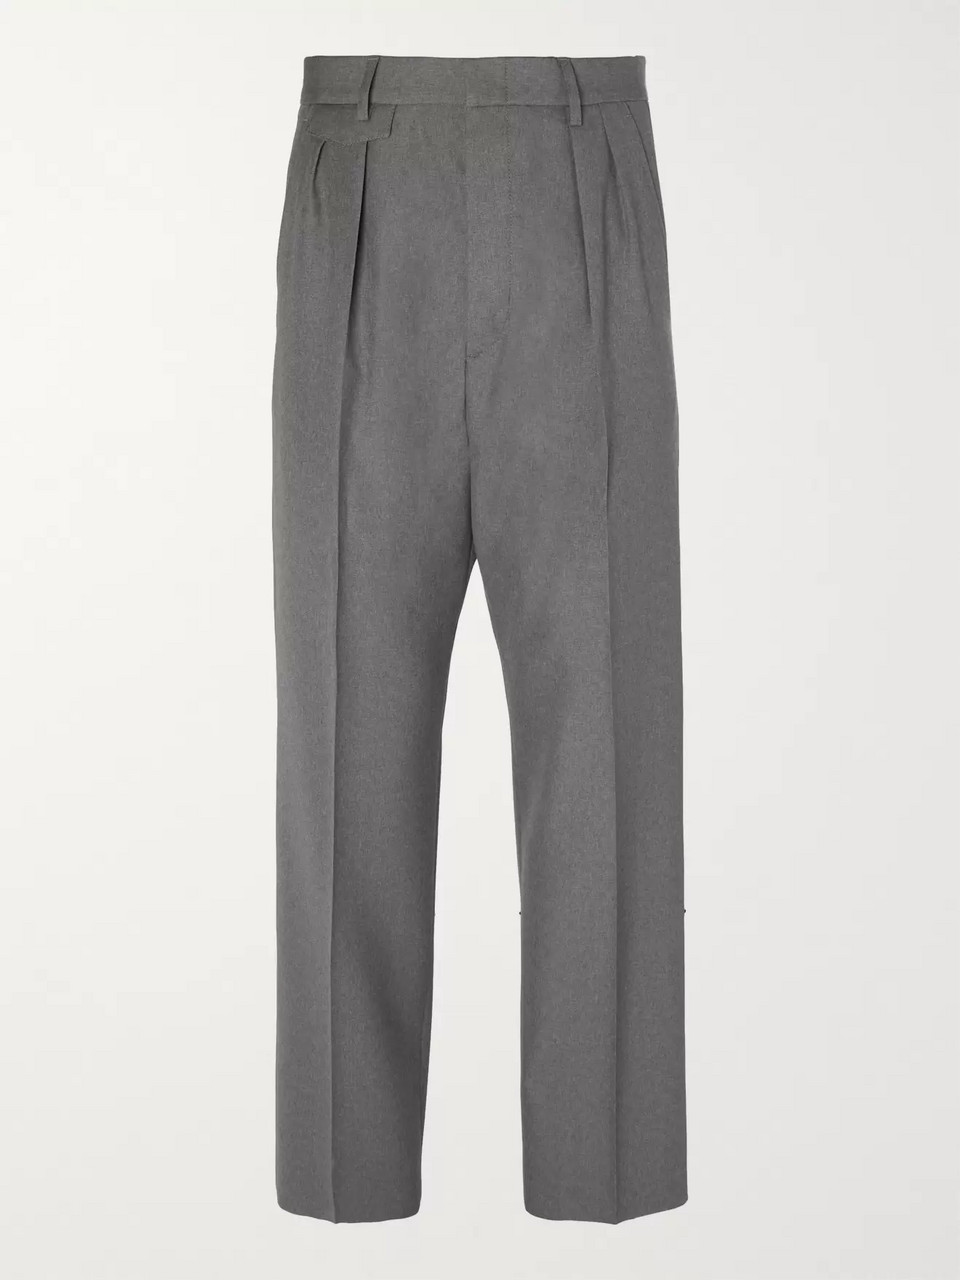 746e8bf12 Dark gray Wide-Leg Pleated Wool Trousers | Gucci | MR PORTER